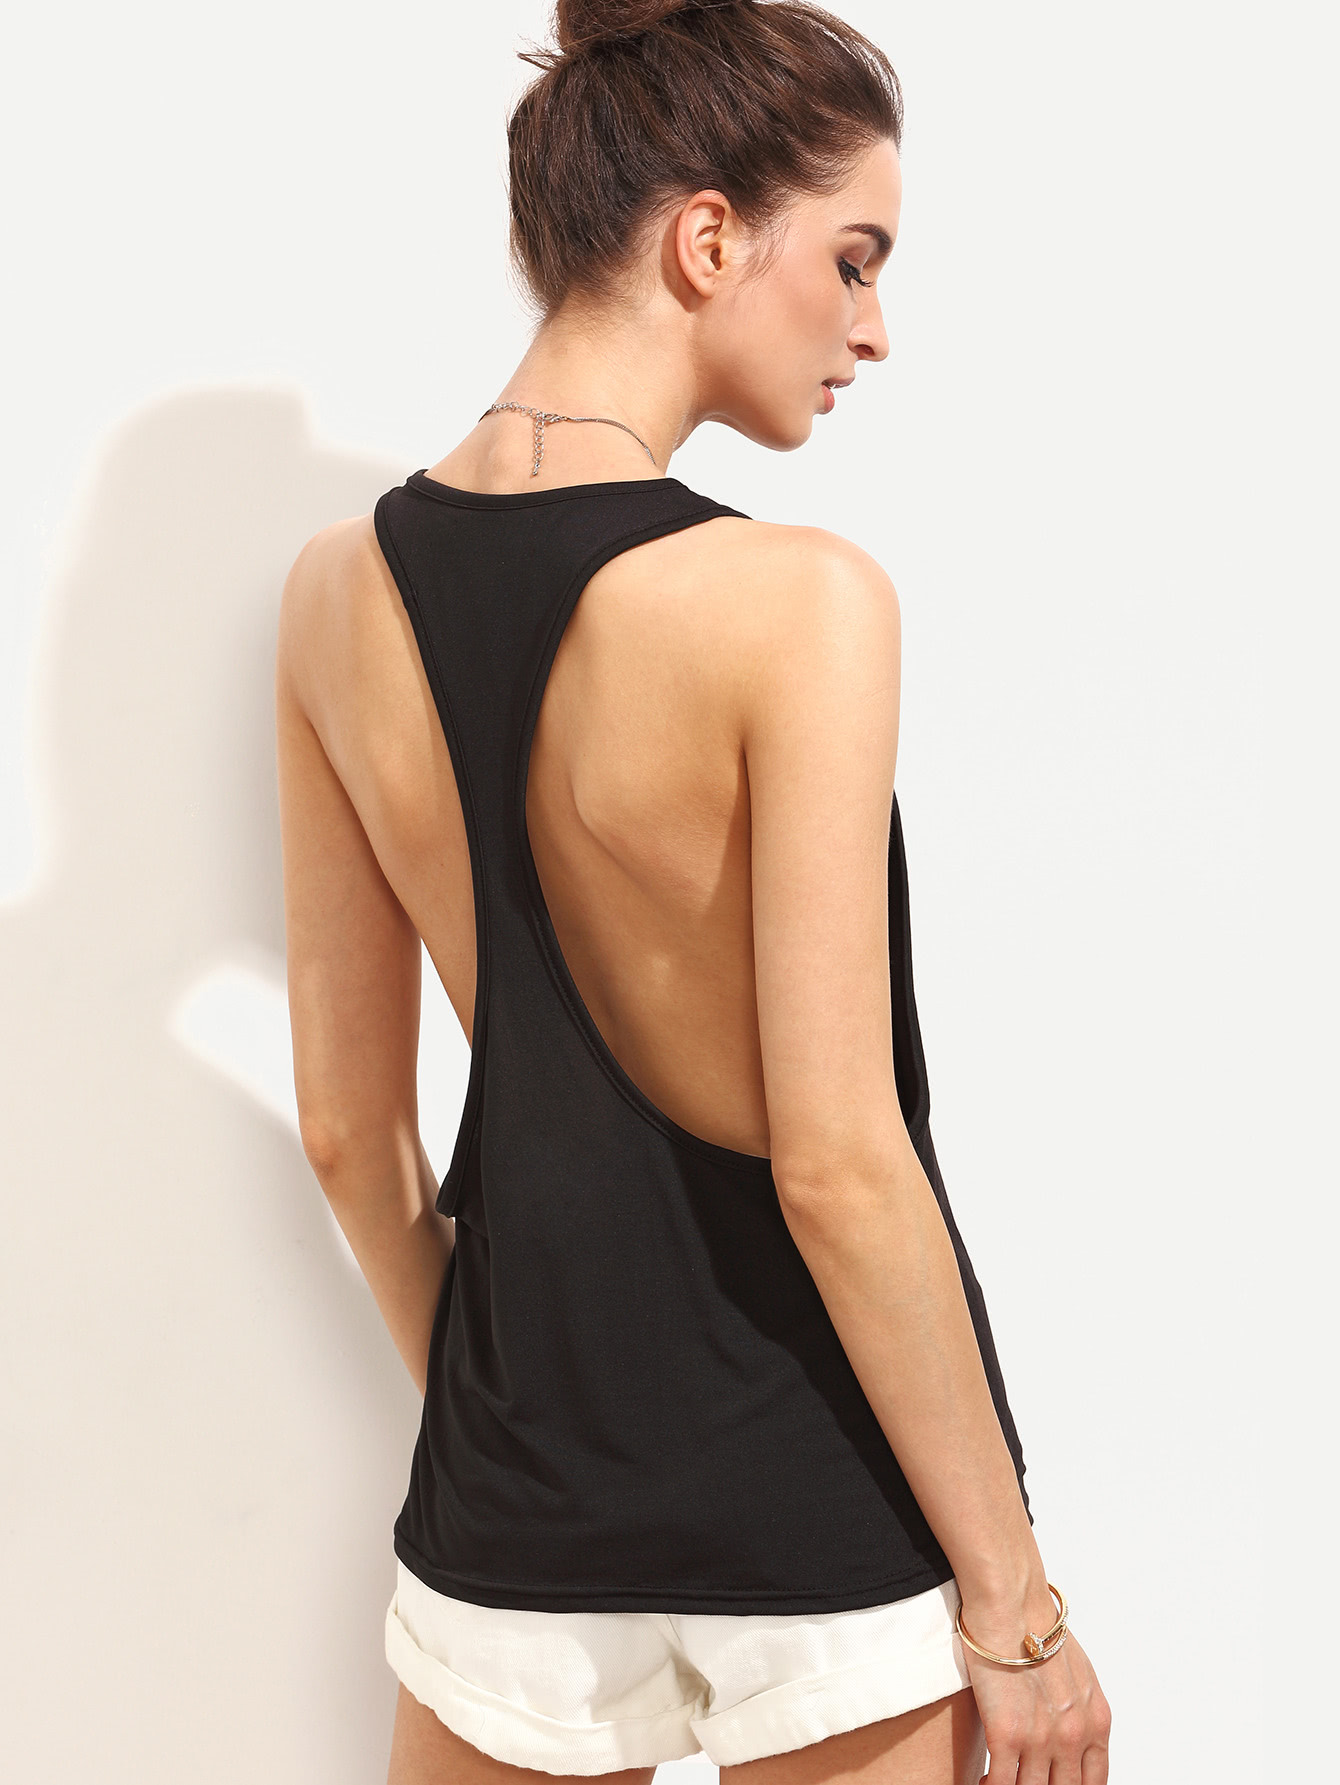 Drop Armhole Racerback Tank Top attractive round neck racerback tank top for women